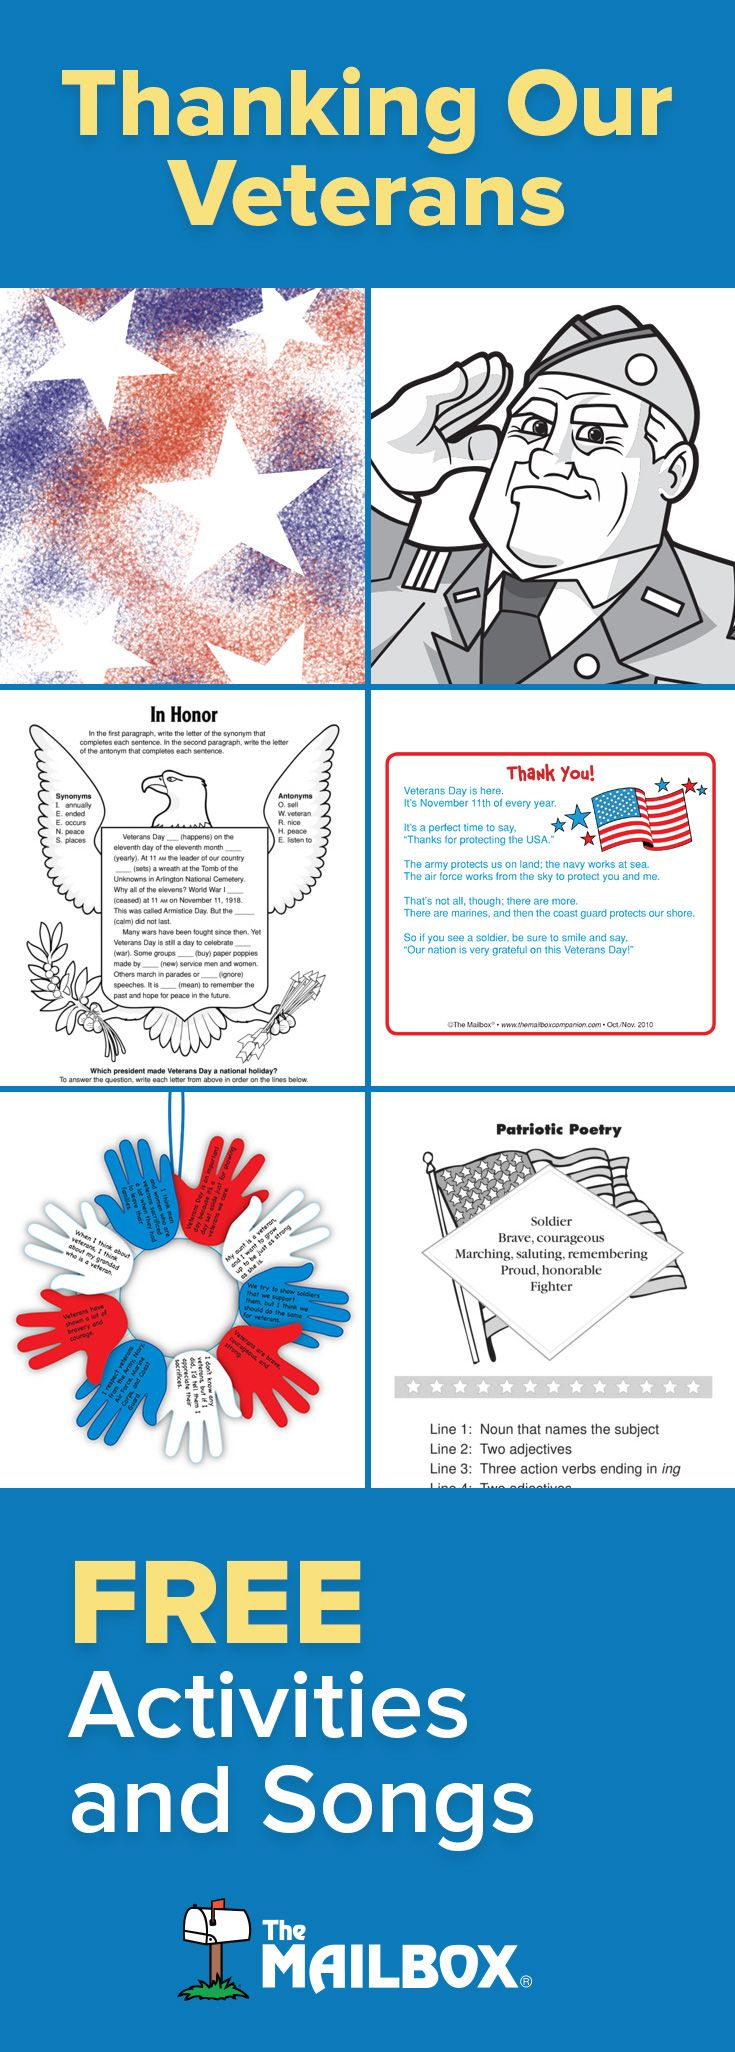 Find FREE craft ideas, informational passages and more at The Mailbox! #veteransday #themailbox #teaching